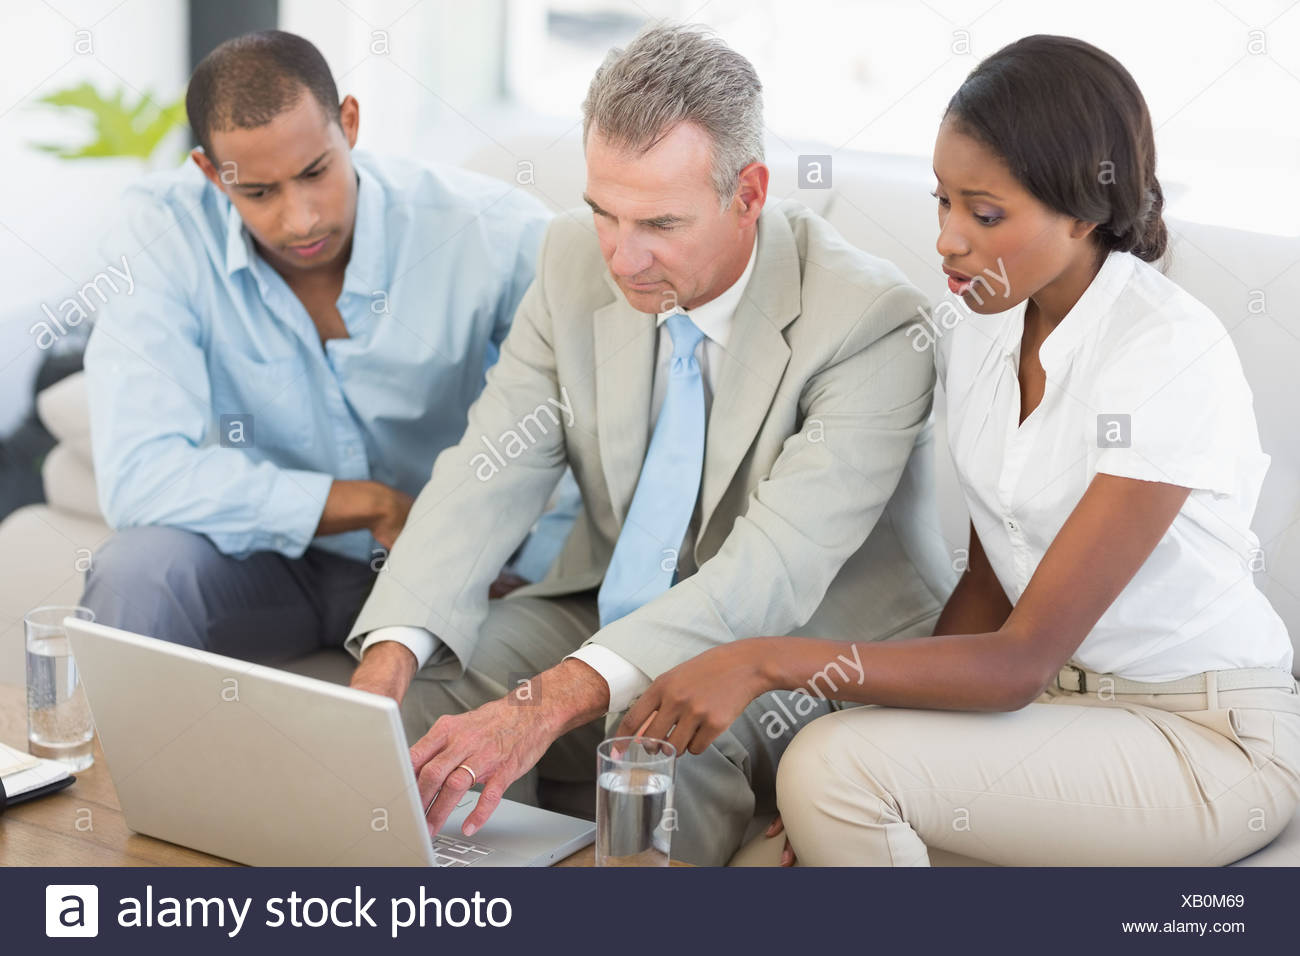 Salesman showing something on laptop to couple on sofa - Stock Image